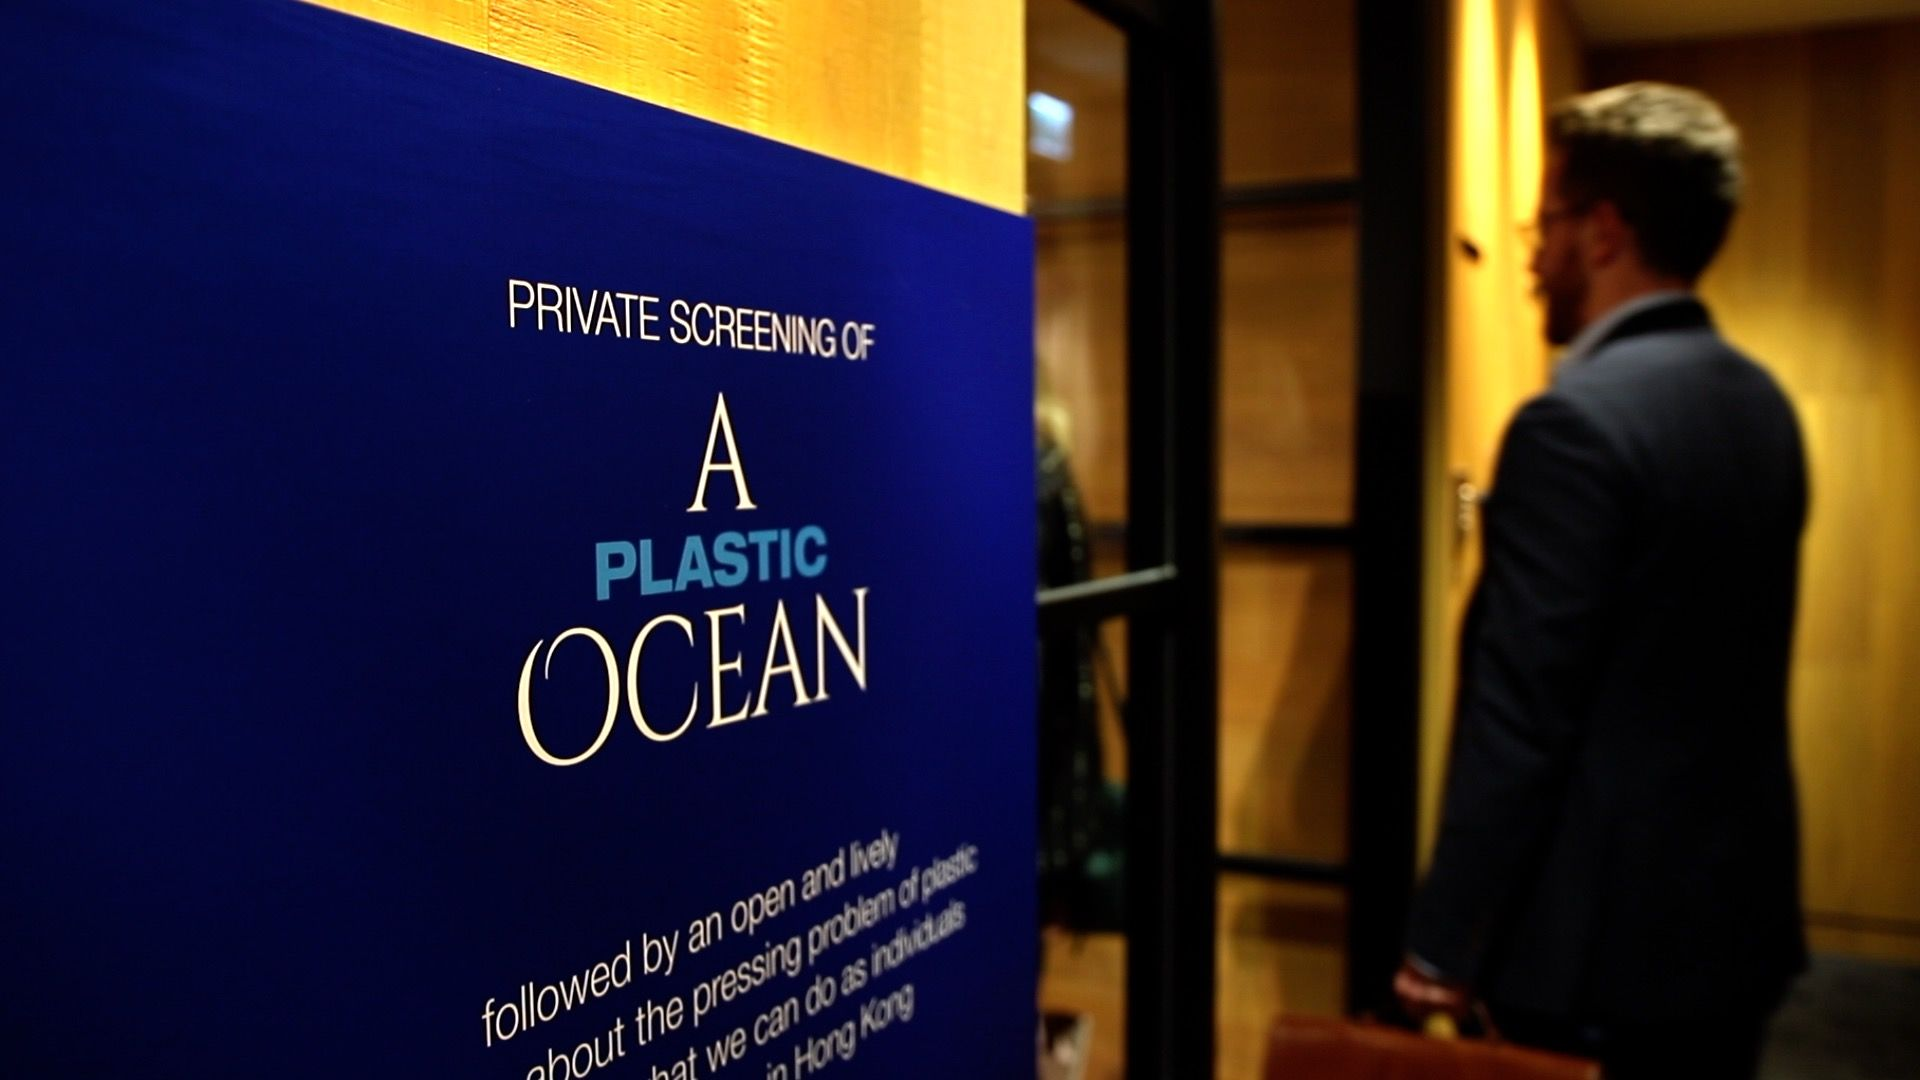 Video: Highlights From The Private Screening Of A Plastic Ocean